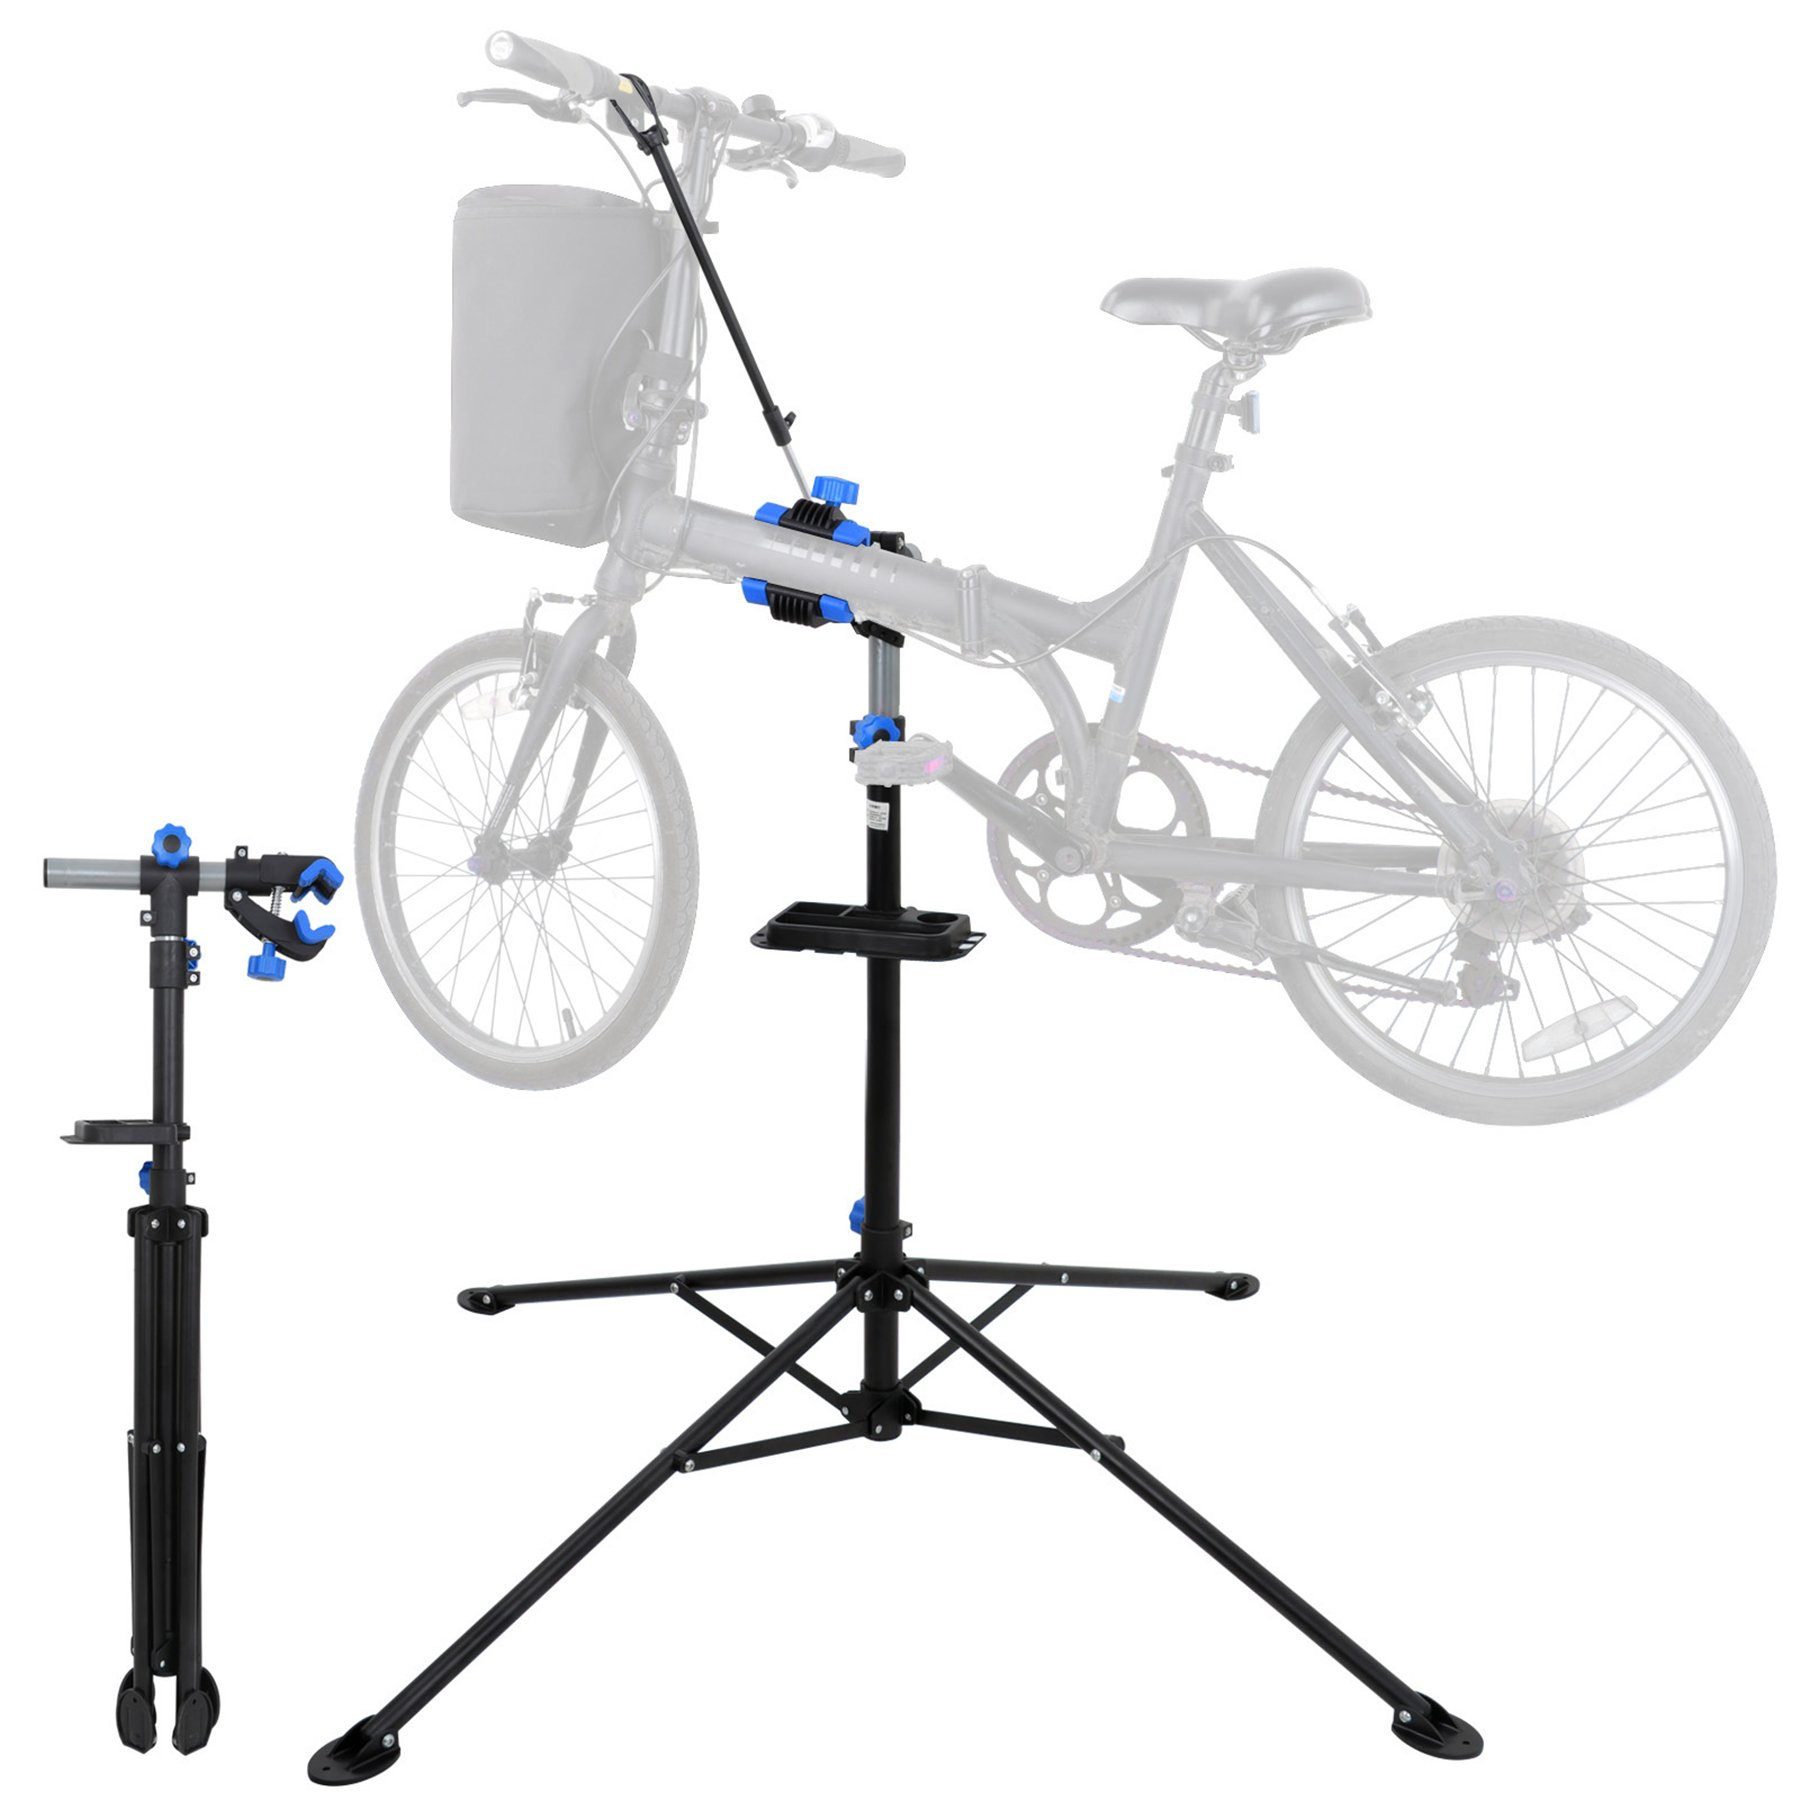 F2C Portable Adjustable 42.5'' to 74'' Pro Home Steel Maintenance Mechanic Bicycle Bike Repair Tool Rack Stands Workstand w/Telescopic Arm, Tool Tray& Balancing Pole Cycle Bicycle Rack